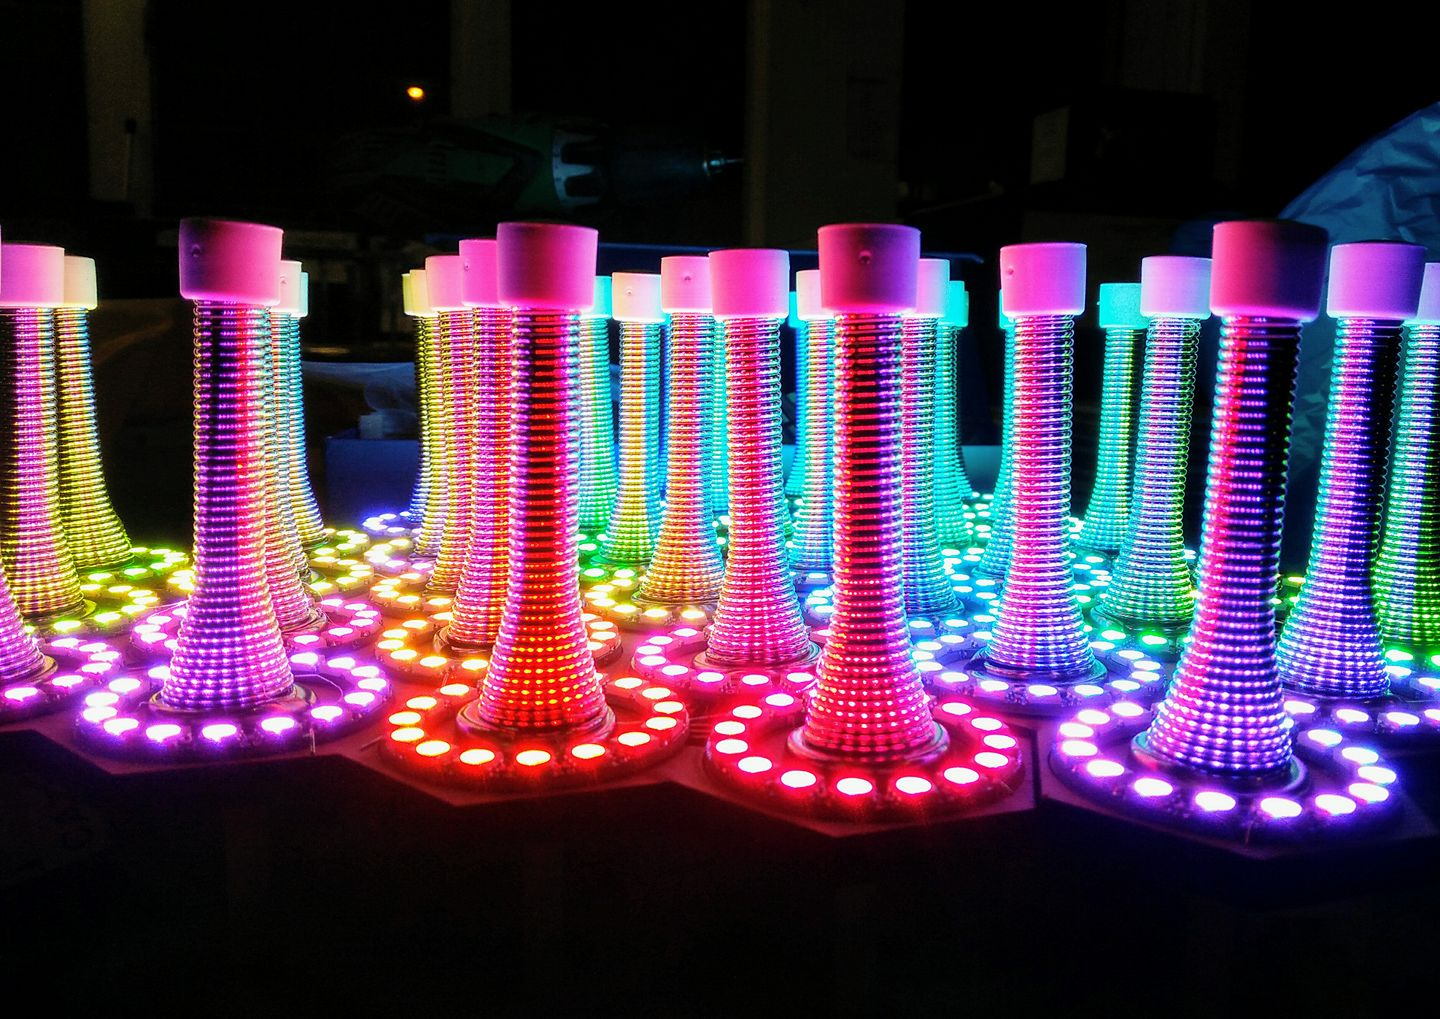 Wobble Garden by Robin Baumgarten and Martin Kvale